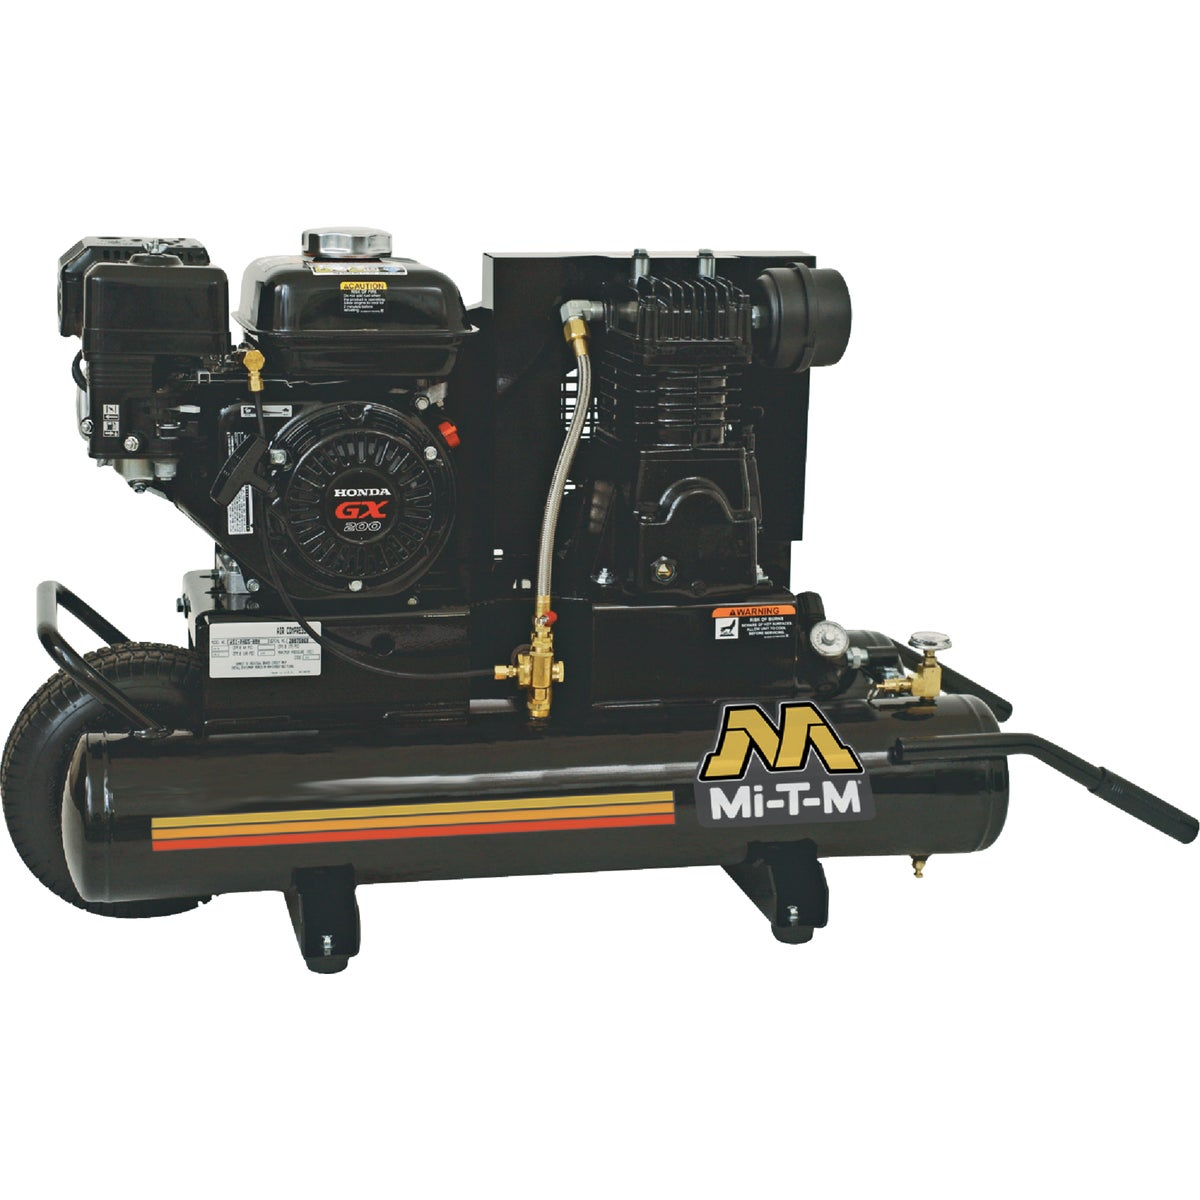 6.5HP GAS AIR COMPRESSOR